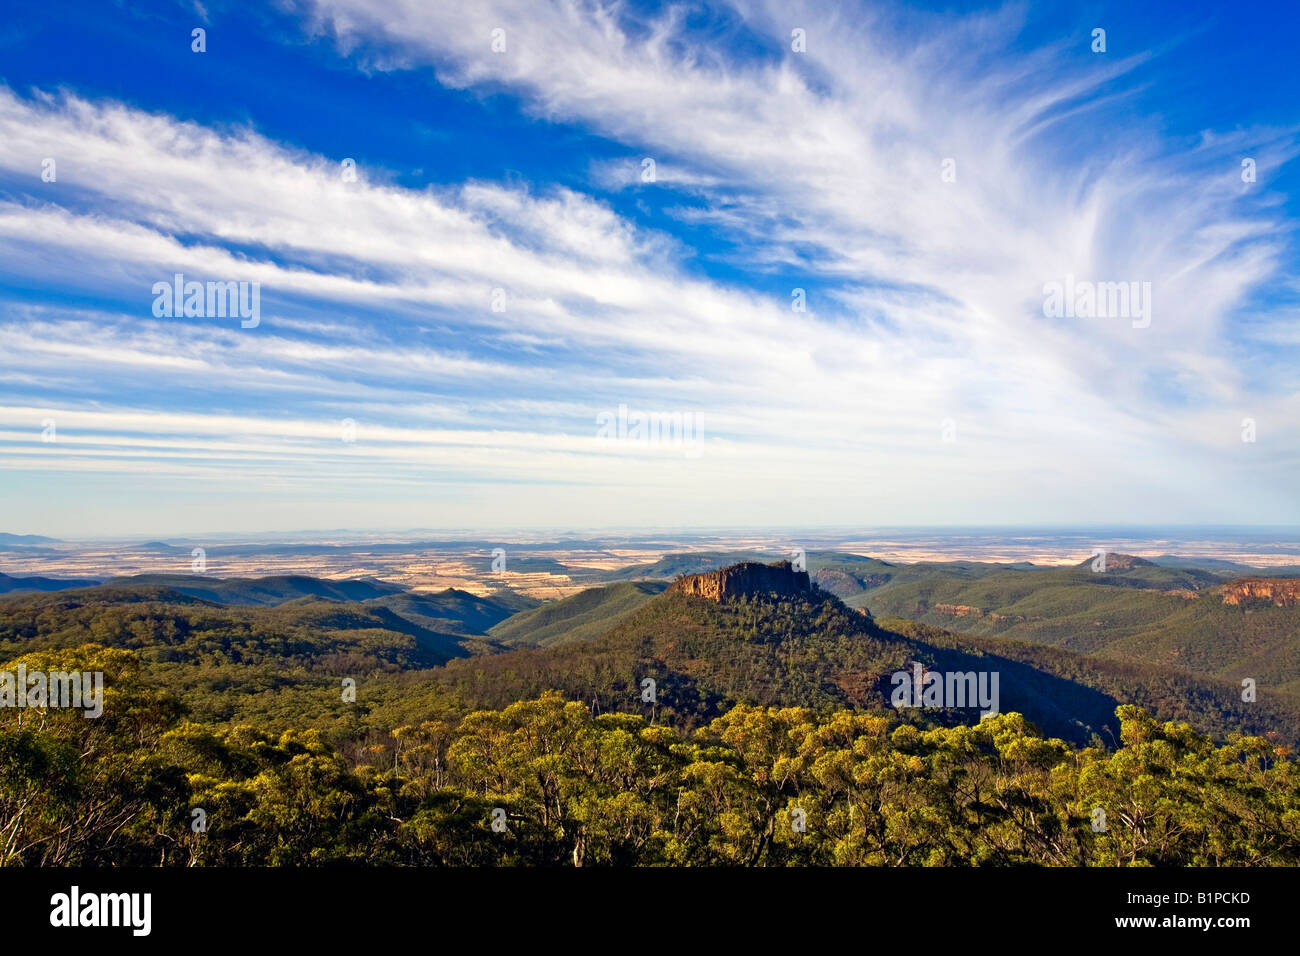 mt-kaputar-national-park-australia-looking-out-to-the-western-plains-B1PCKD.jpg